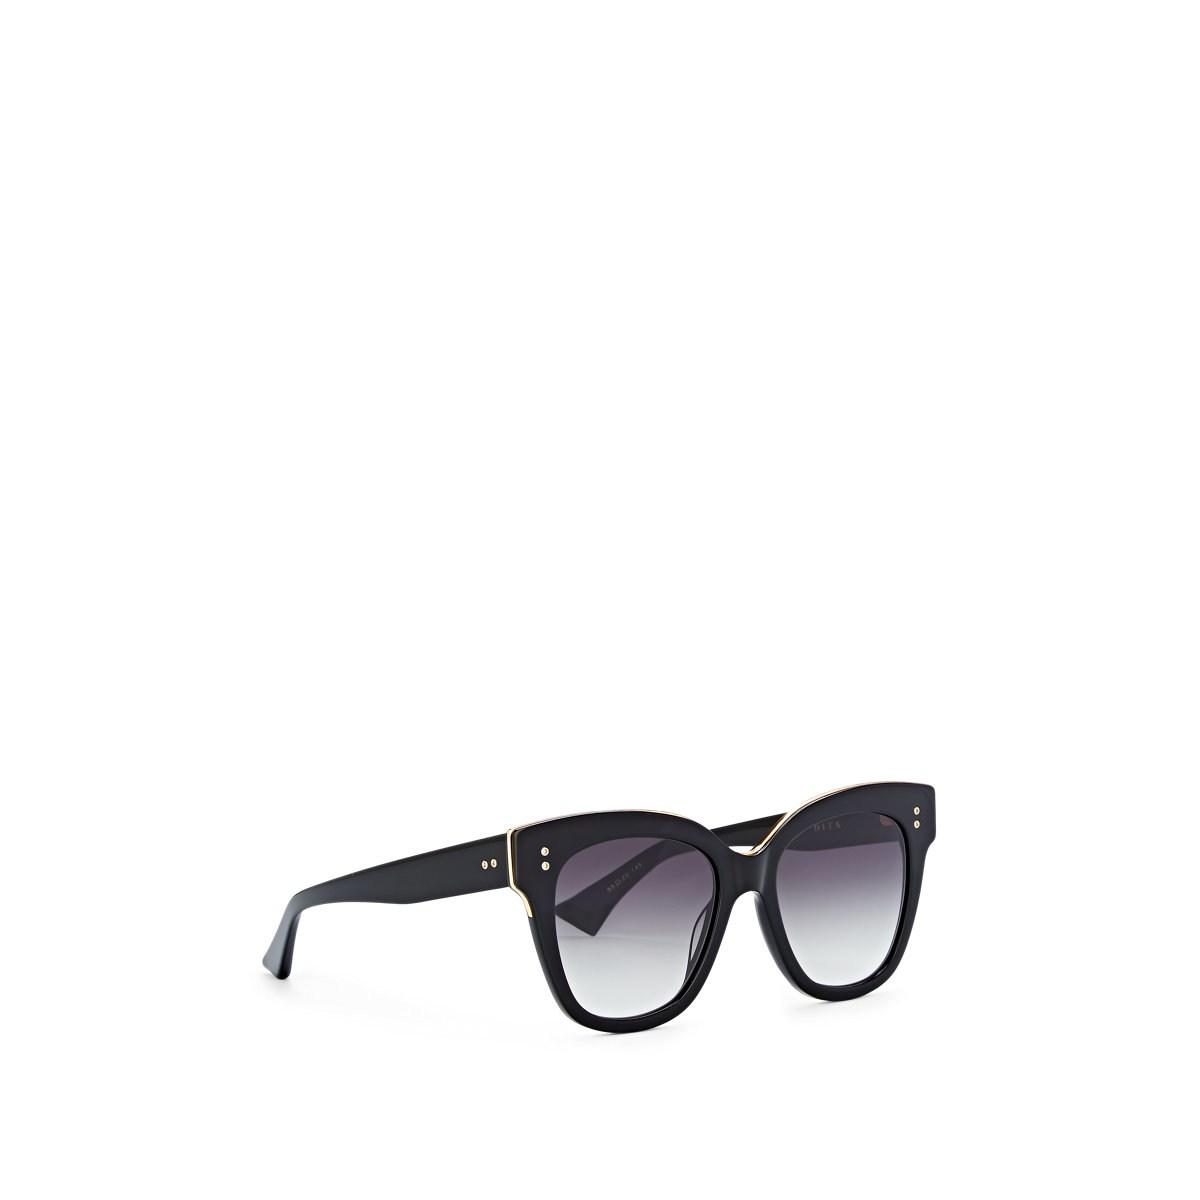 788ab02c858 Dita - Black Day Tripper Sunglasses - Lyst. View fullscreen